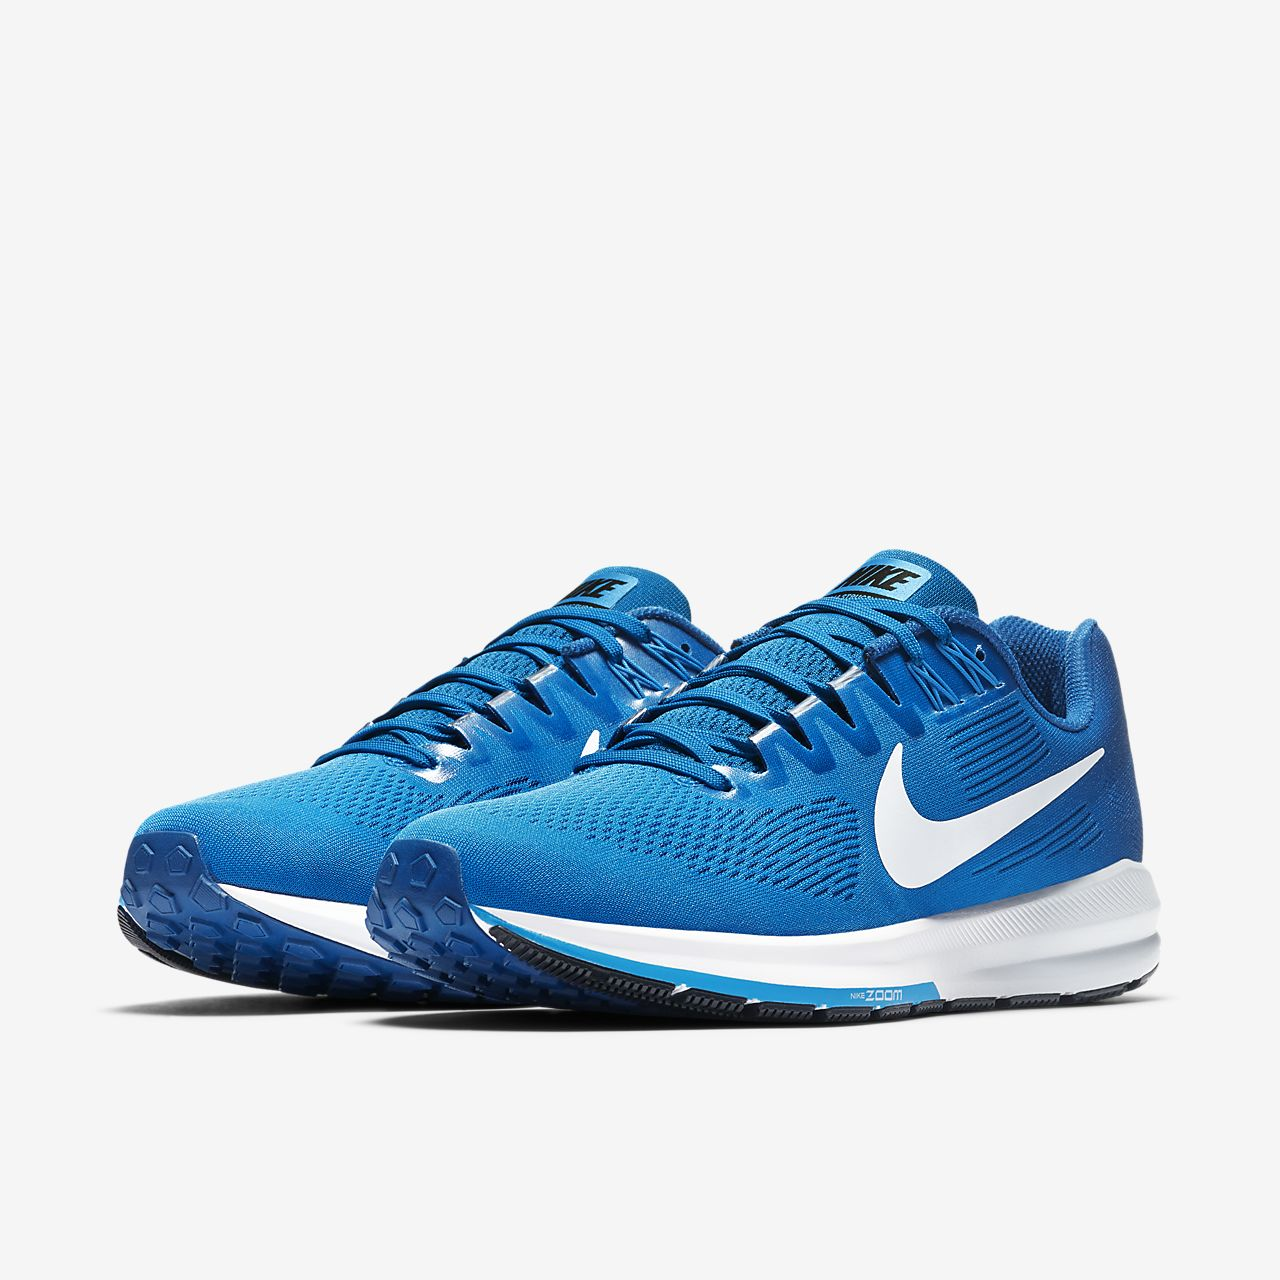 ... Chaussure de running Nike Air Zoom Structure 21 pour Homme